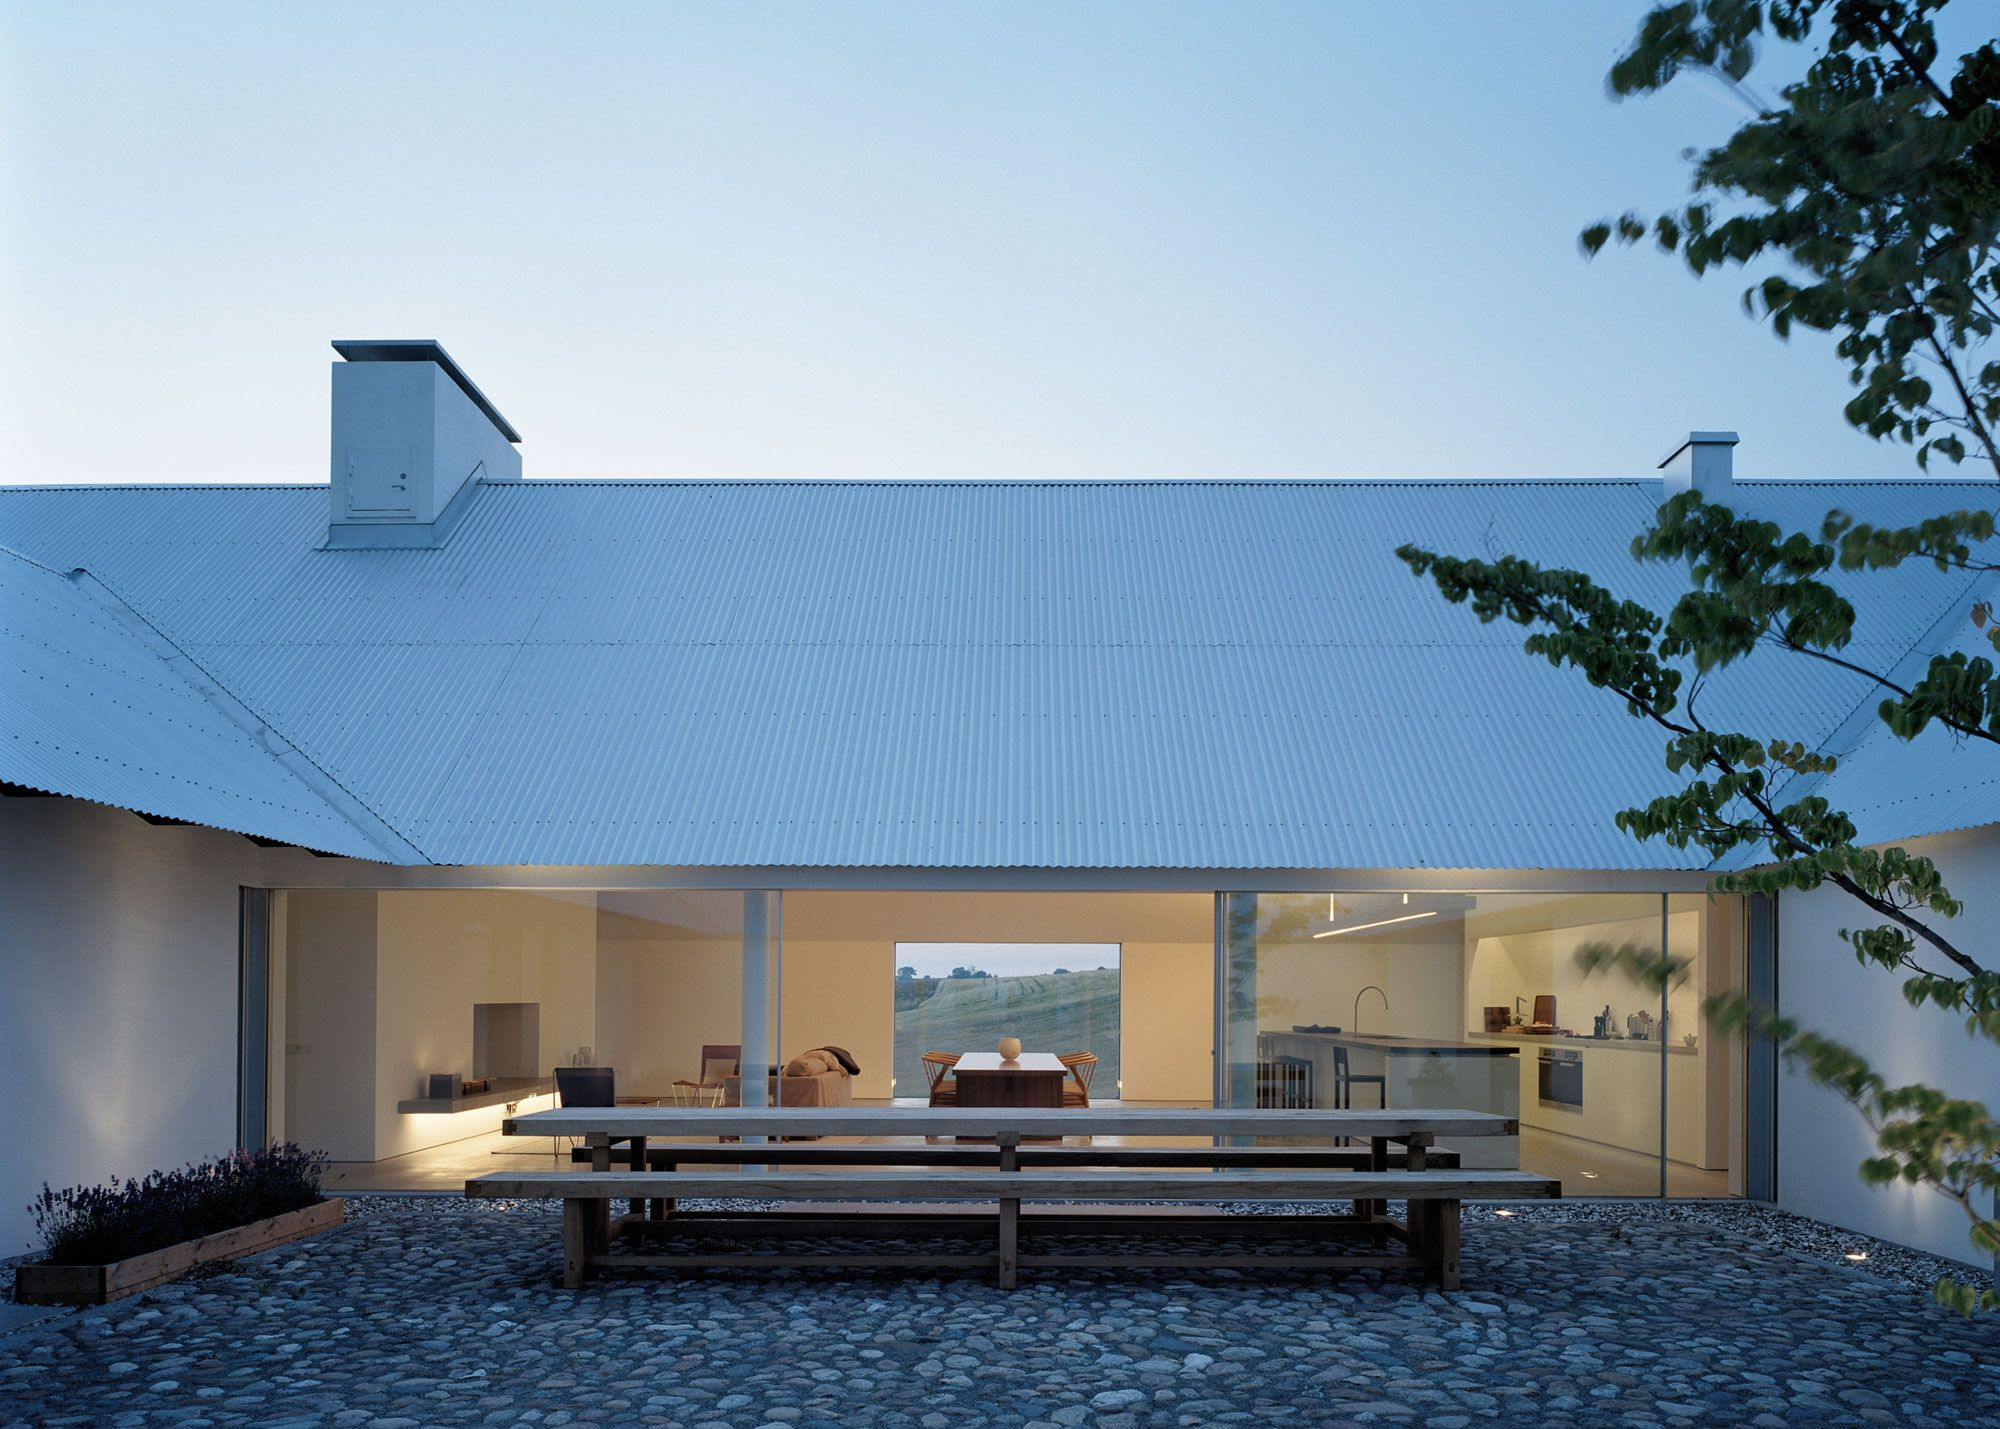 Baron mobili ~ Baron house is a summer house in some ways typical of scandinavian